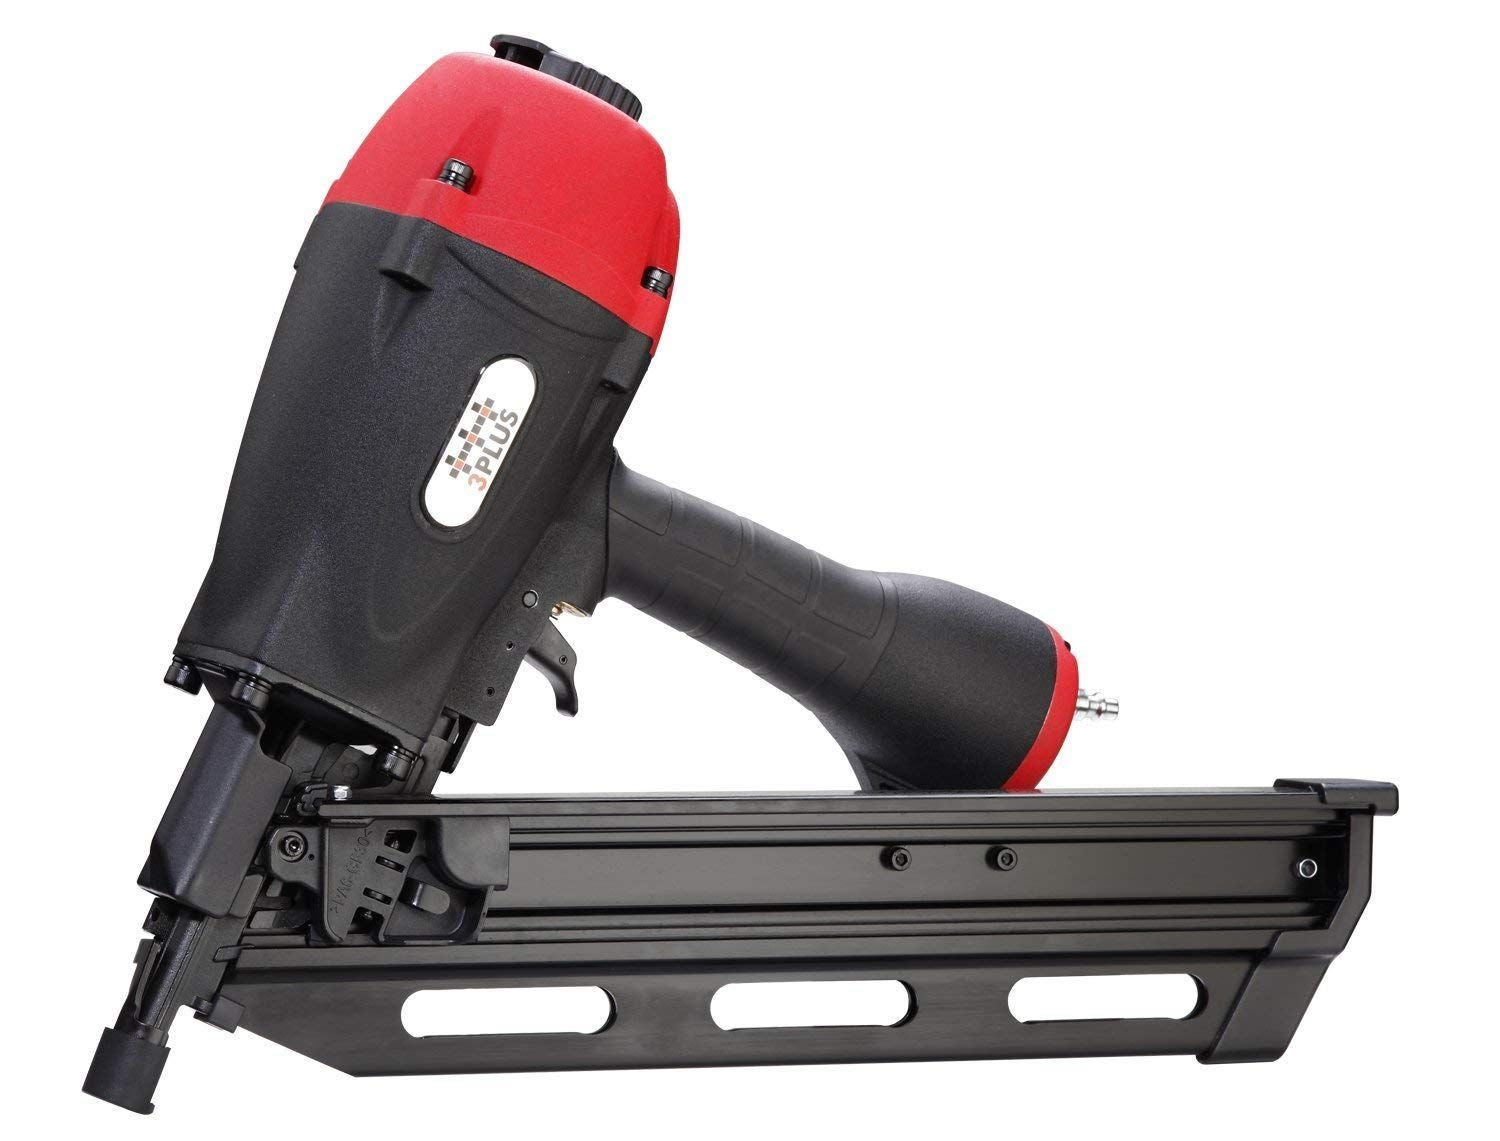 3plus H2890sp 28 Degree Clipped Head Framing Nailer Click Image To Review More Details This Is An Affil Framing Nailers Nailer Best Cordless Circular Saw